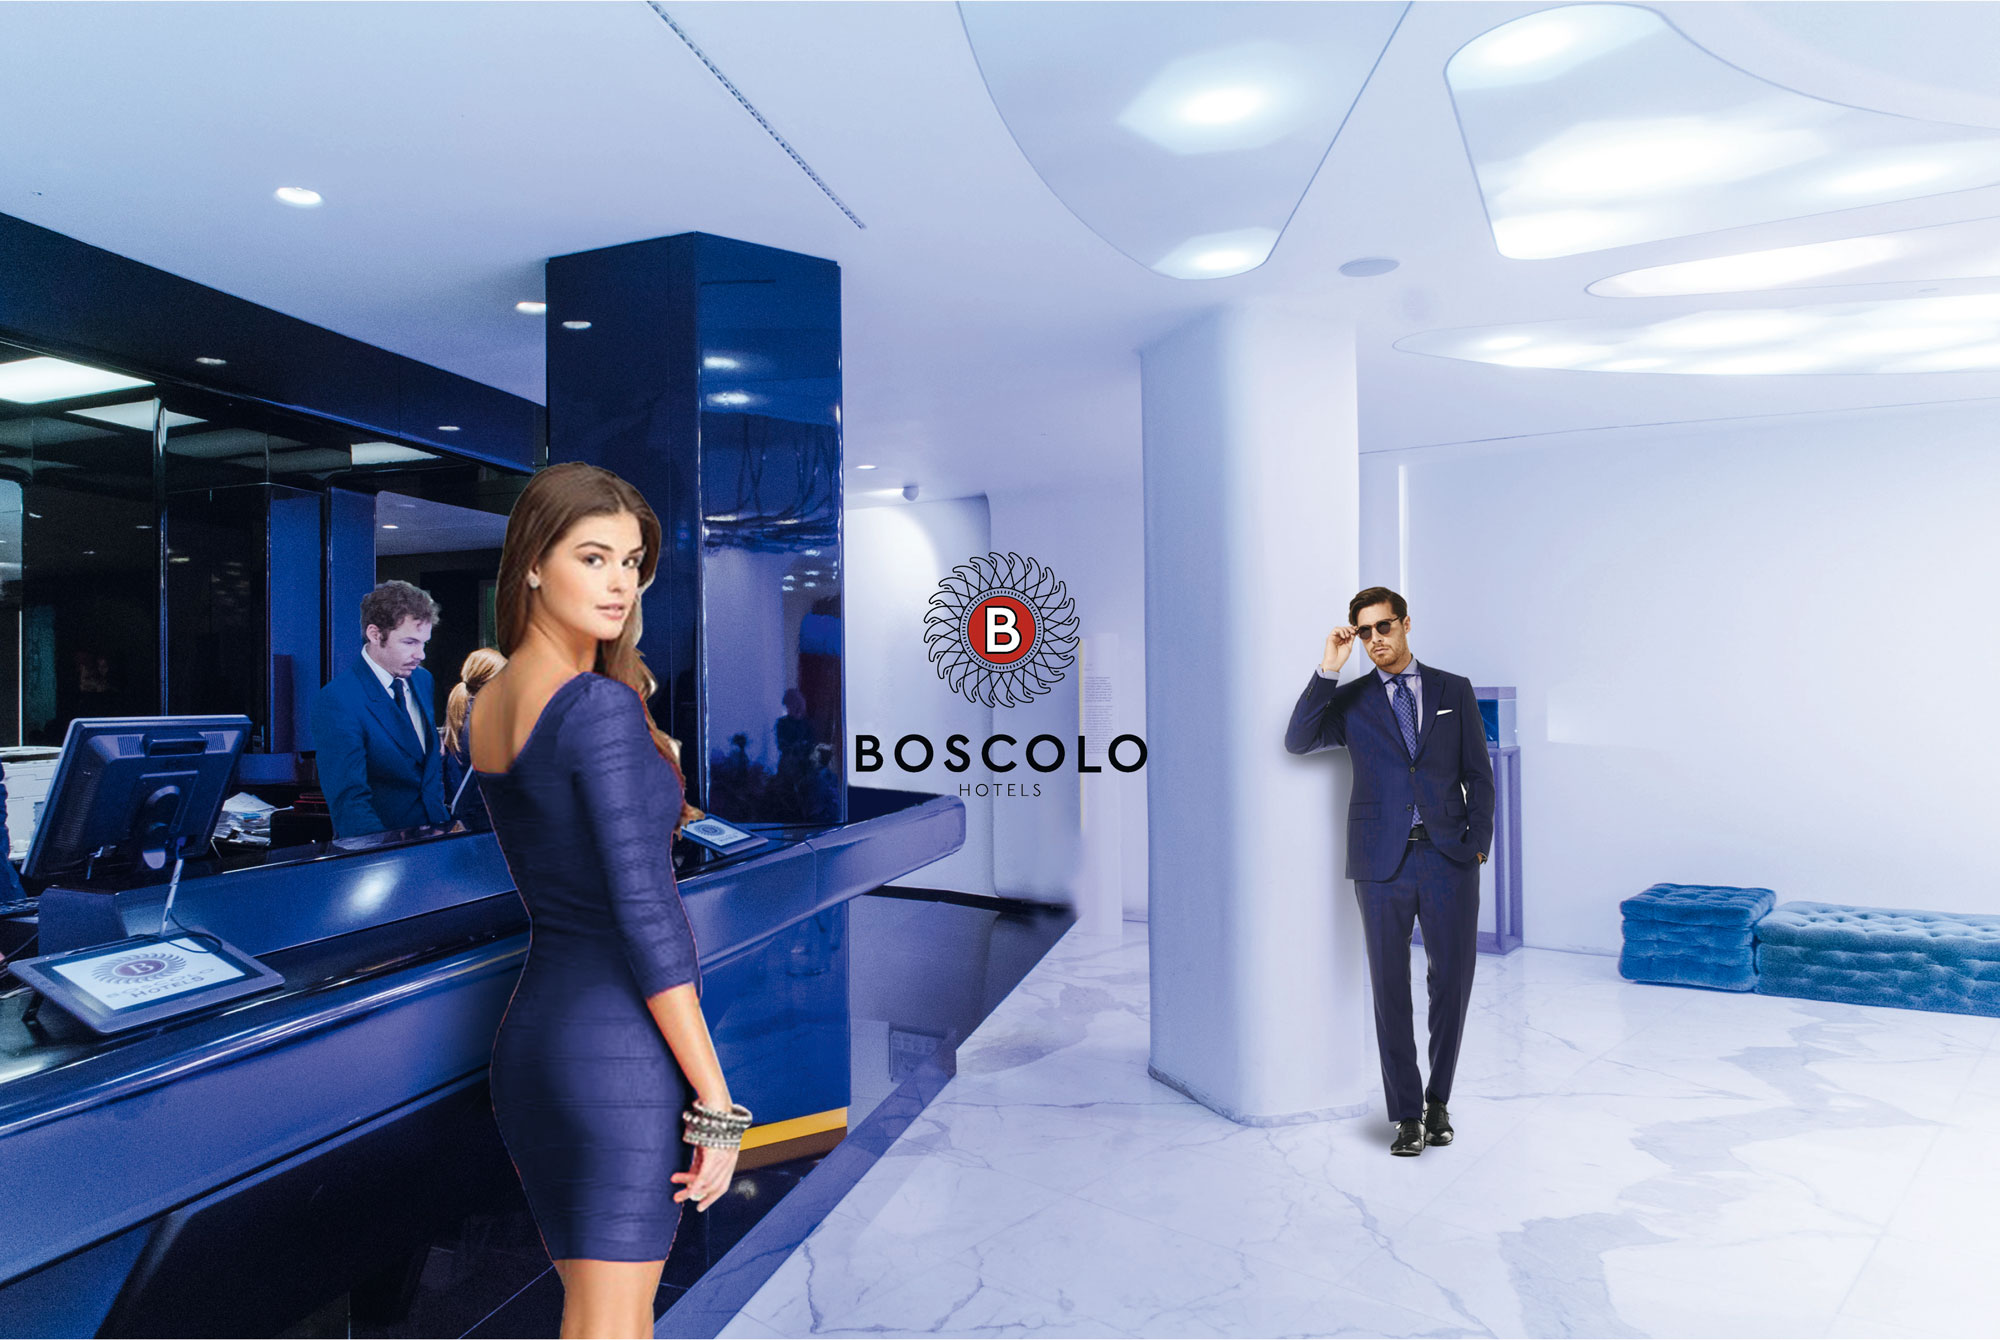 boscolo-hotel-advertising